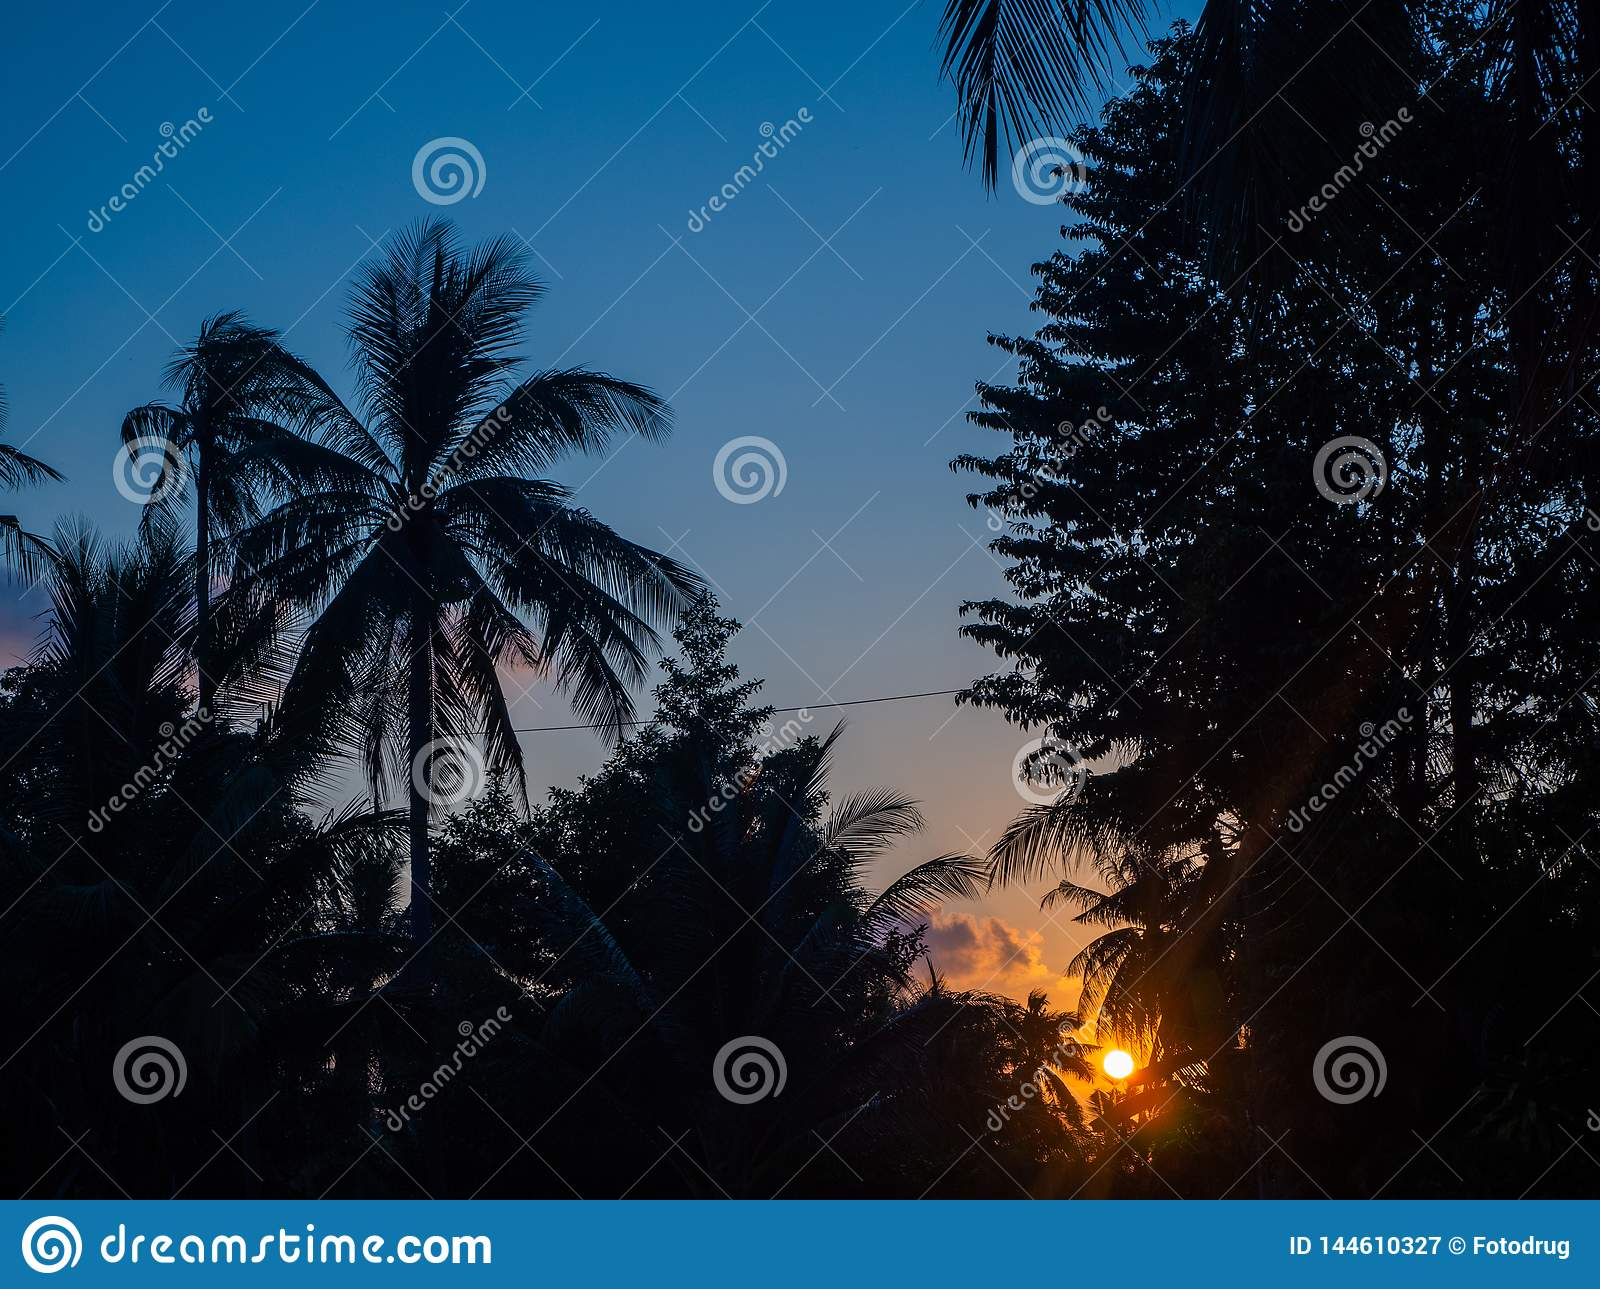 Silhouette of palm trees at sunset and multicolored clouds